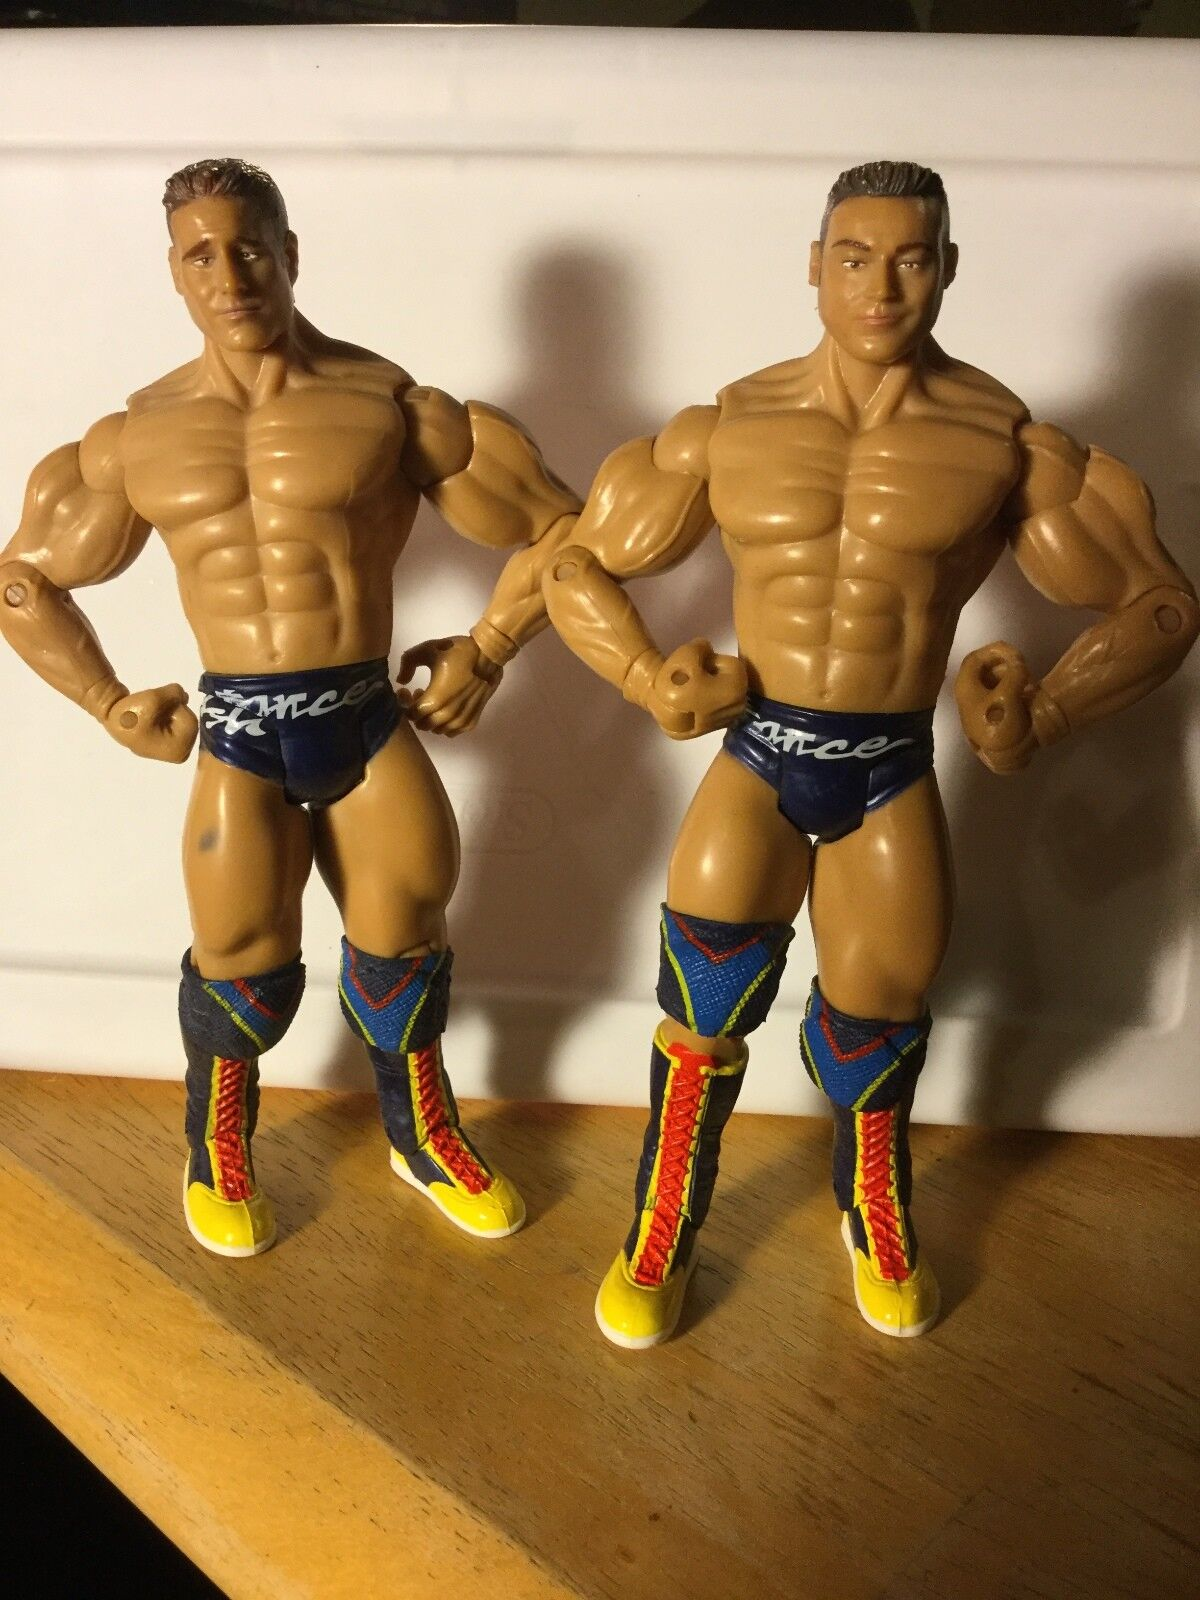 LA RESISTANCE ROB CONWAY & RENE DUPREE JAKKS WWE RUTHLESS AGGRESSION  FIGURES